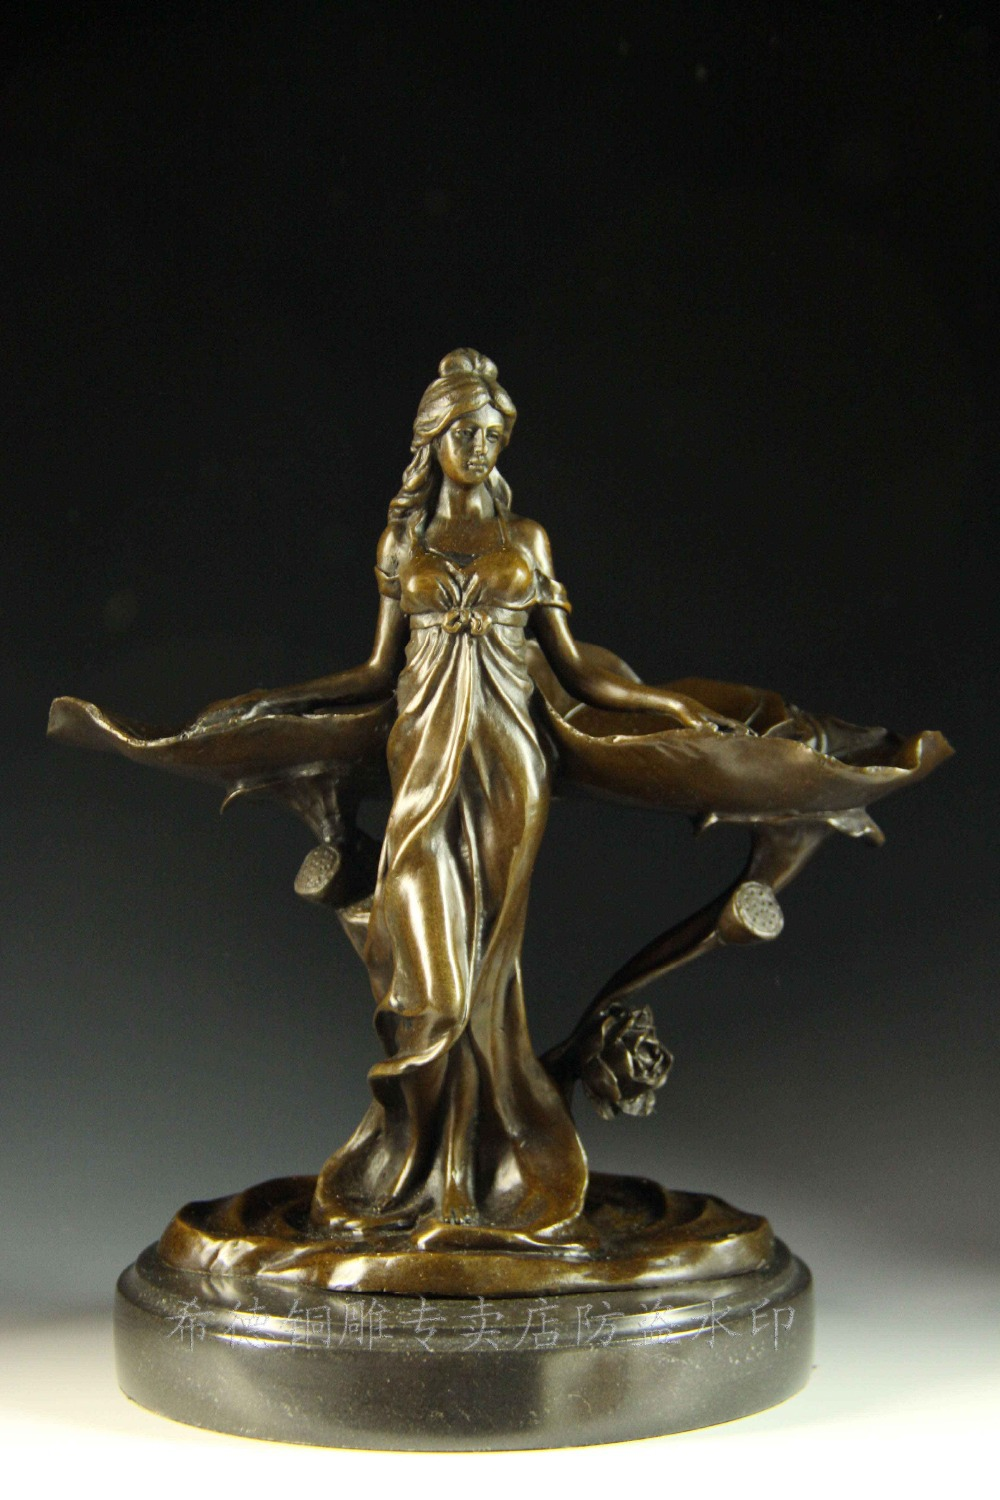 Aliexpress Com Buy Classical Vintage Pure Bronze Tray Decoration Home Decor Women Statue Figurines Sculpture For